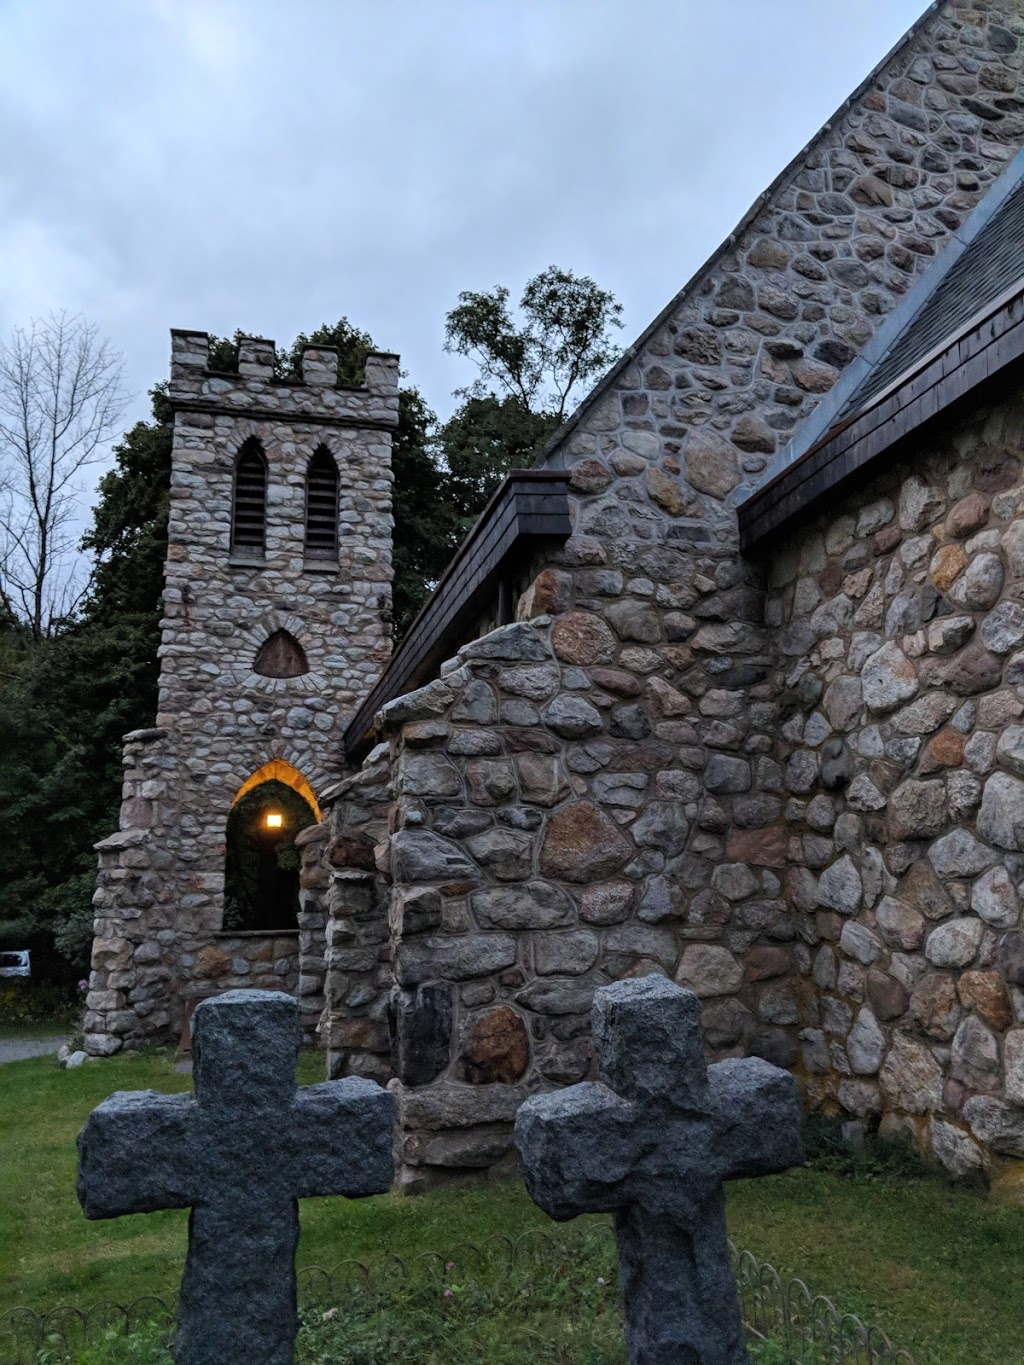 Cragsmoor Stone Church - church  | Photo 3 of 10 | Address: 280 Henry Rd, Cragsmoor, NY 12420, USA